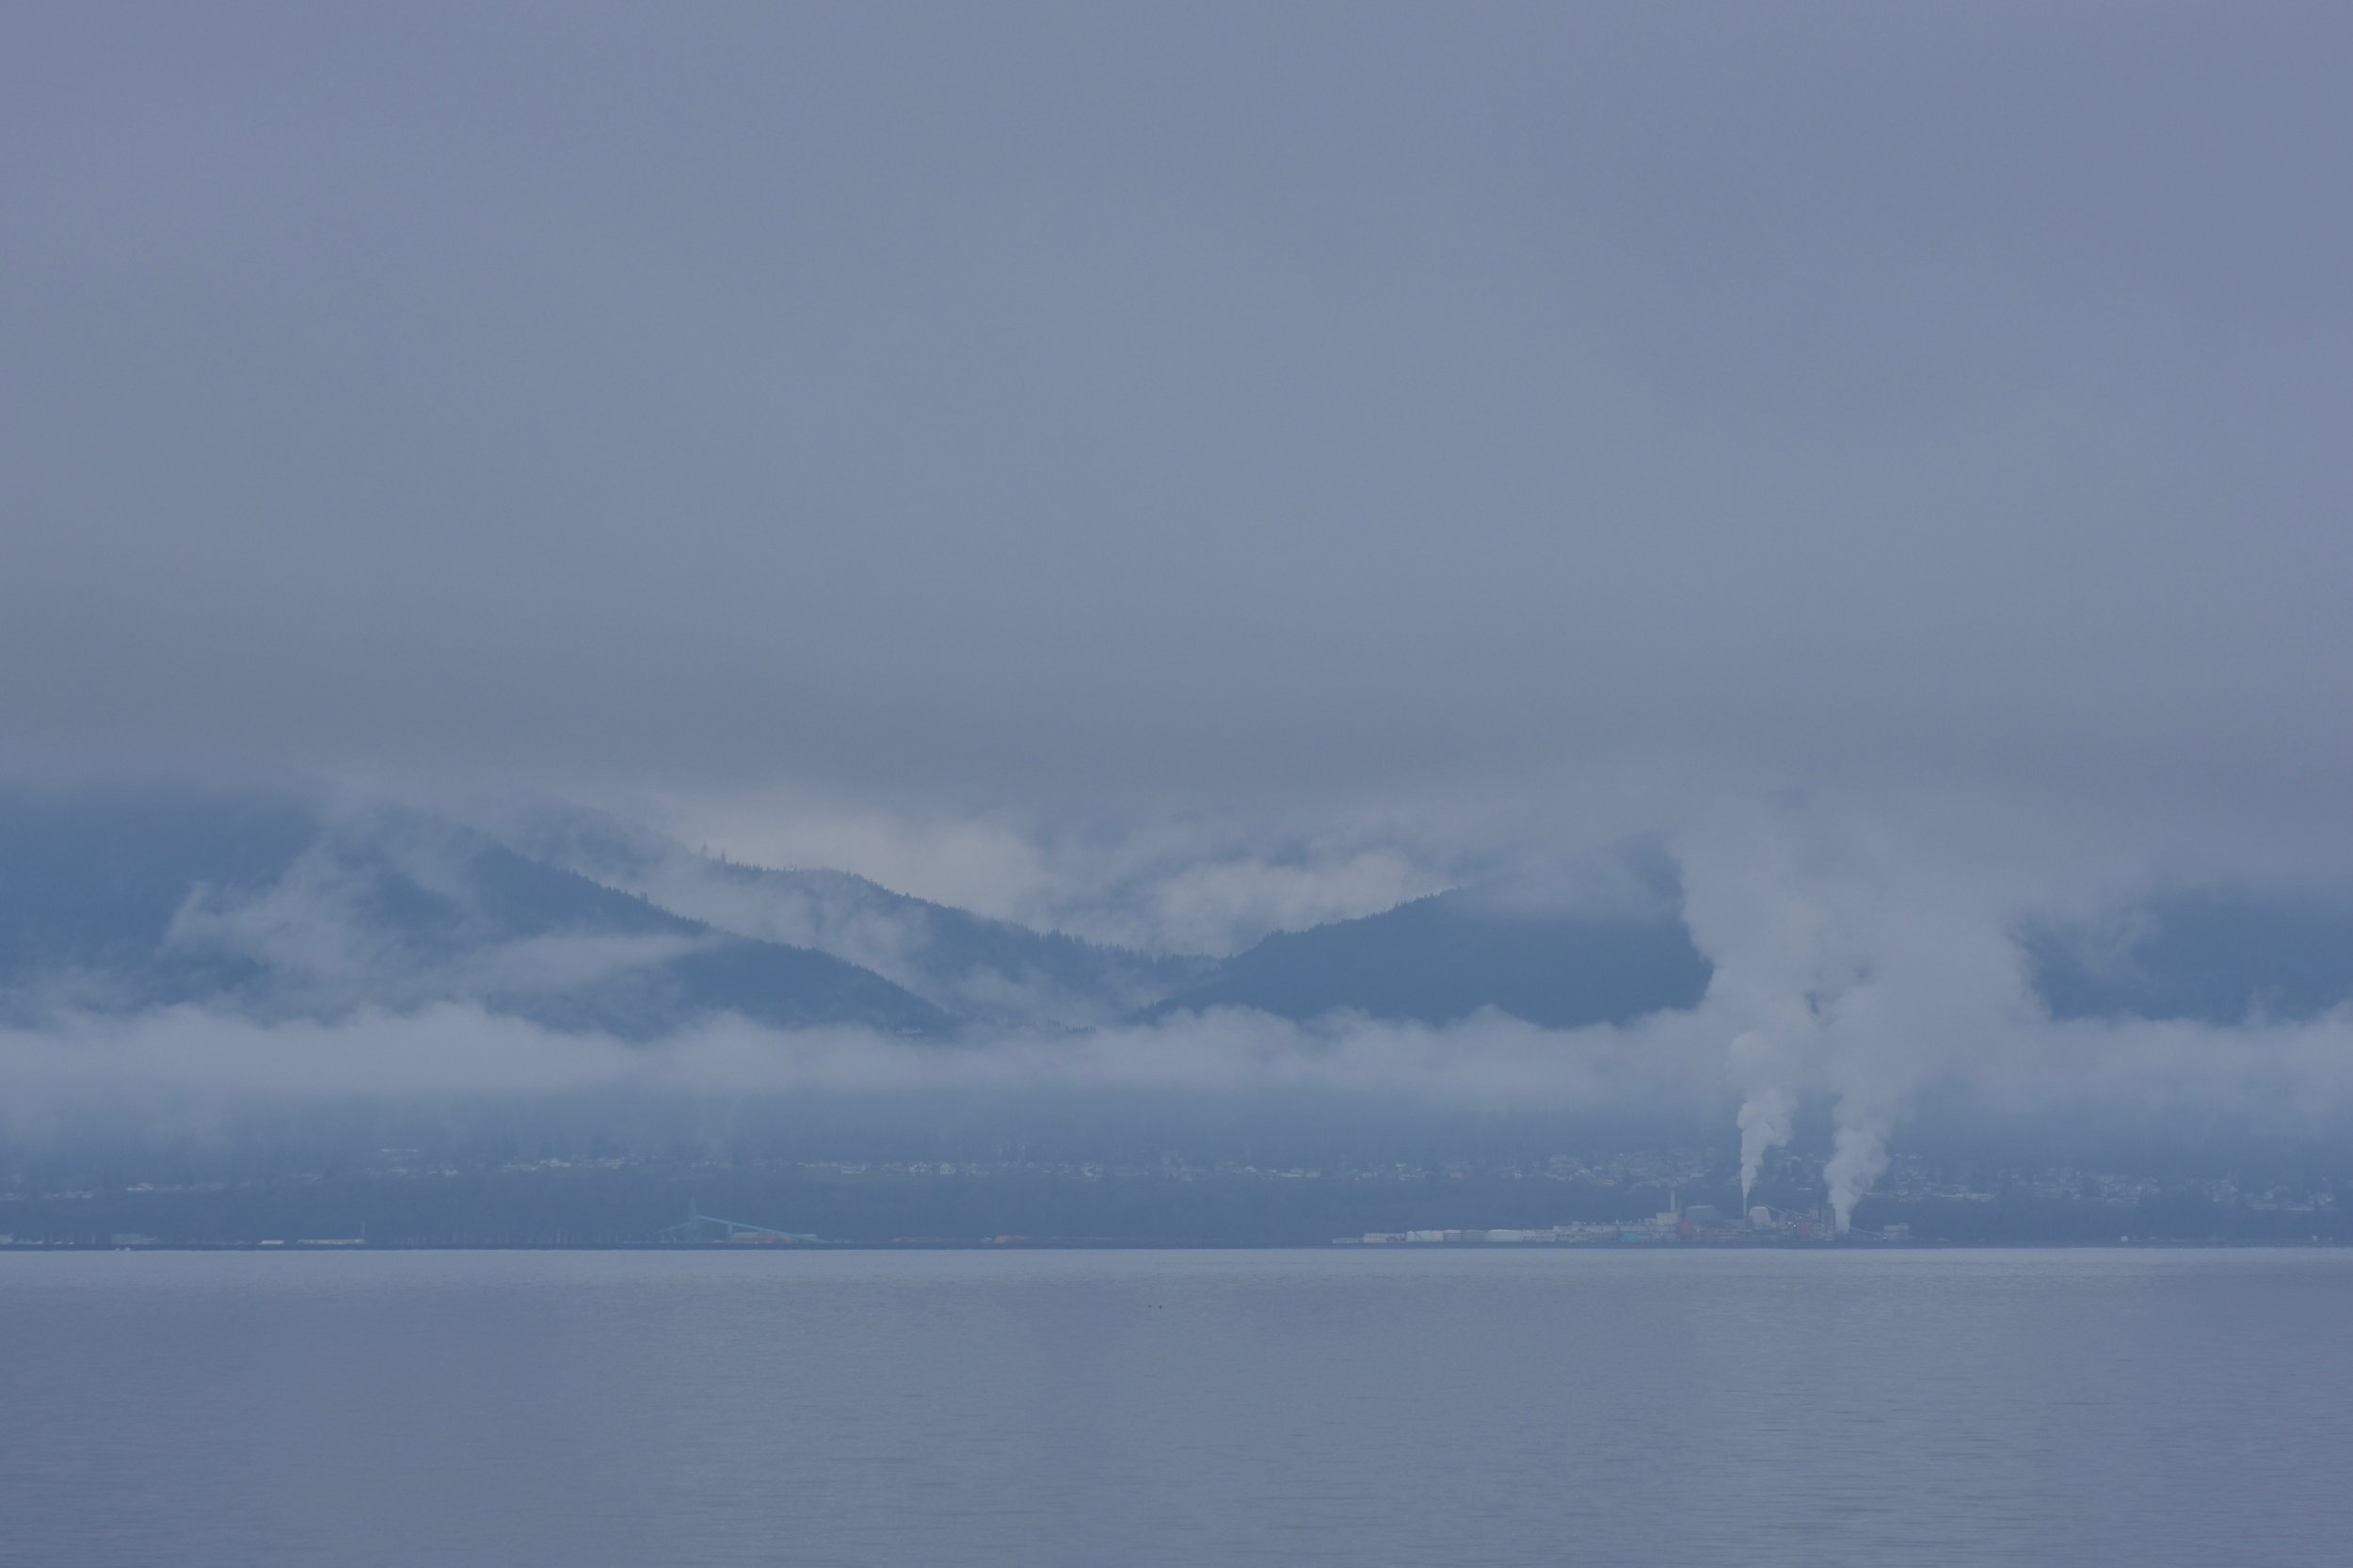 Port Angeles from the strait; That is actually a wood burning power plant.